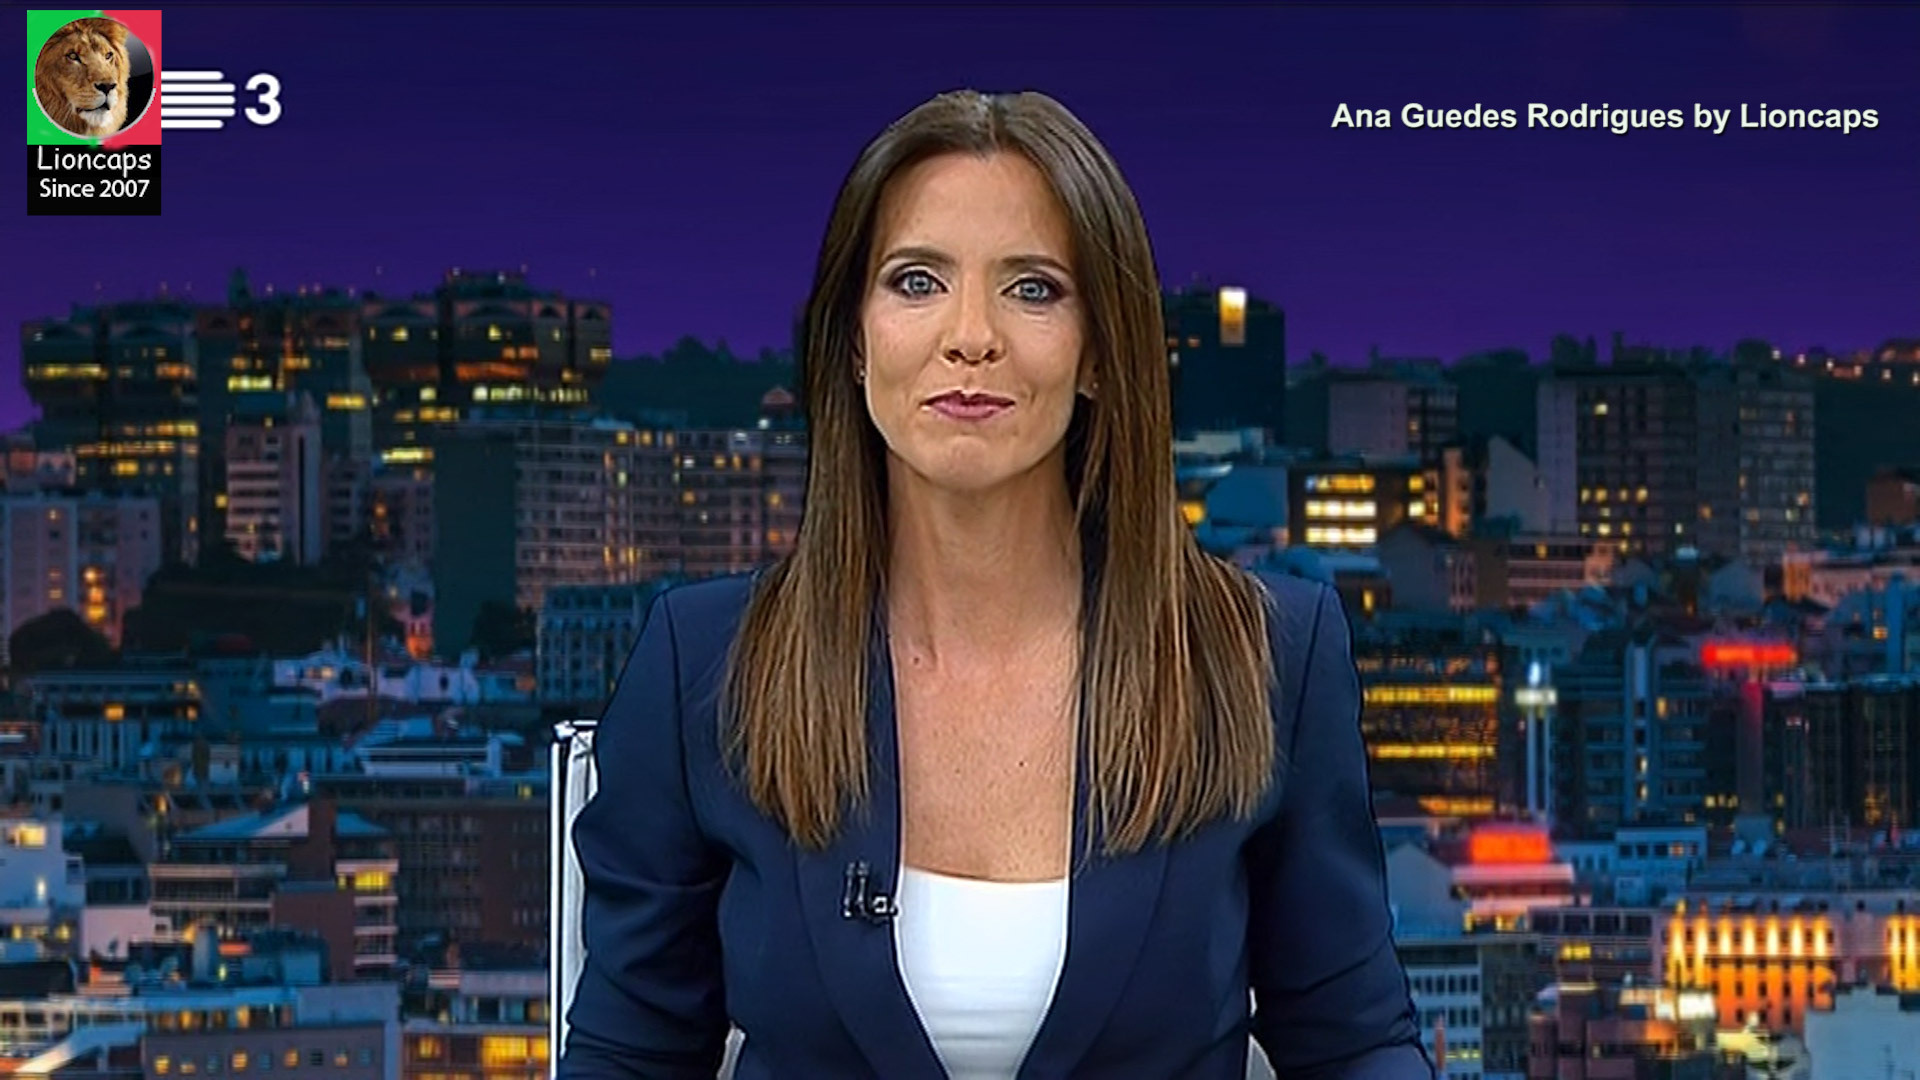 ana_guedes_rodrigues_lioncaps_15_08_2021 (6).jpg